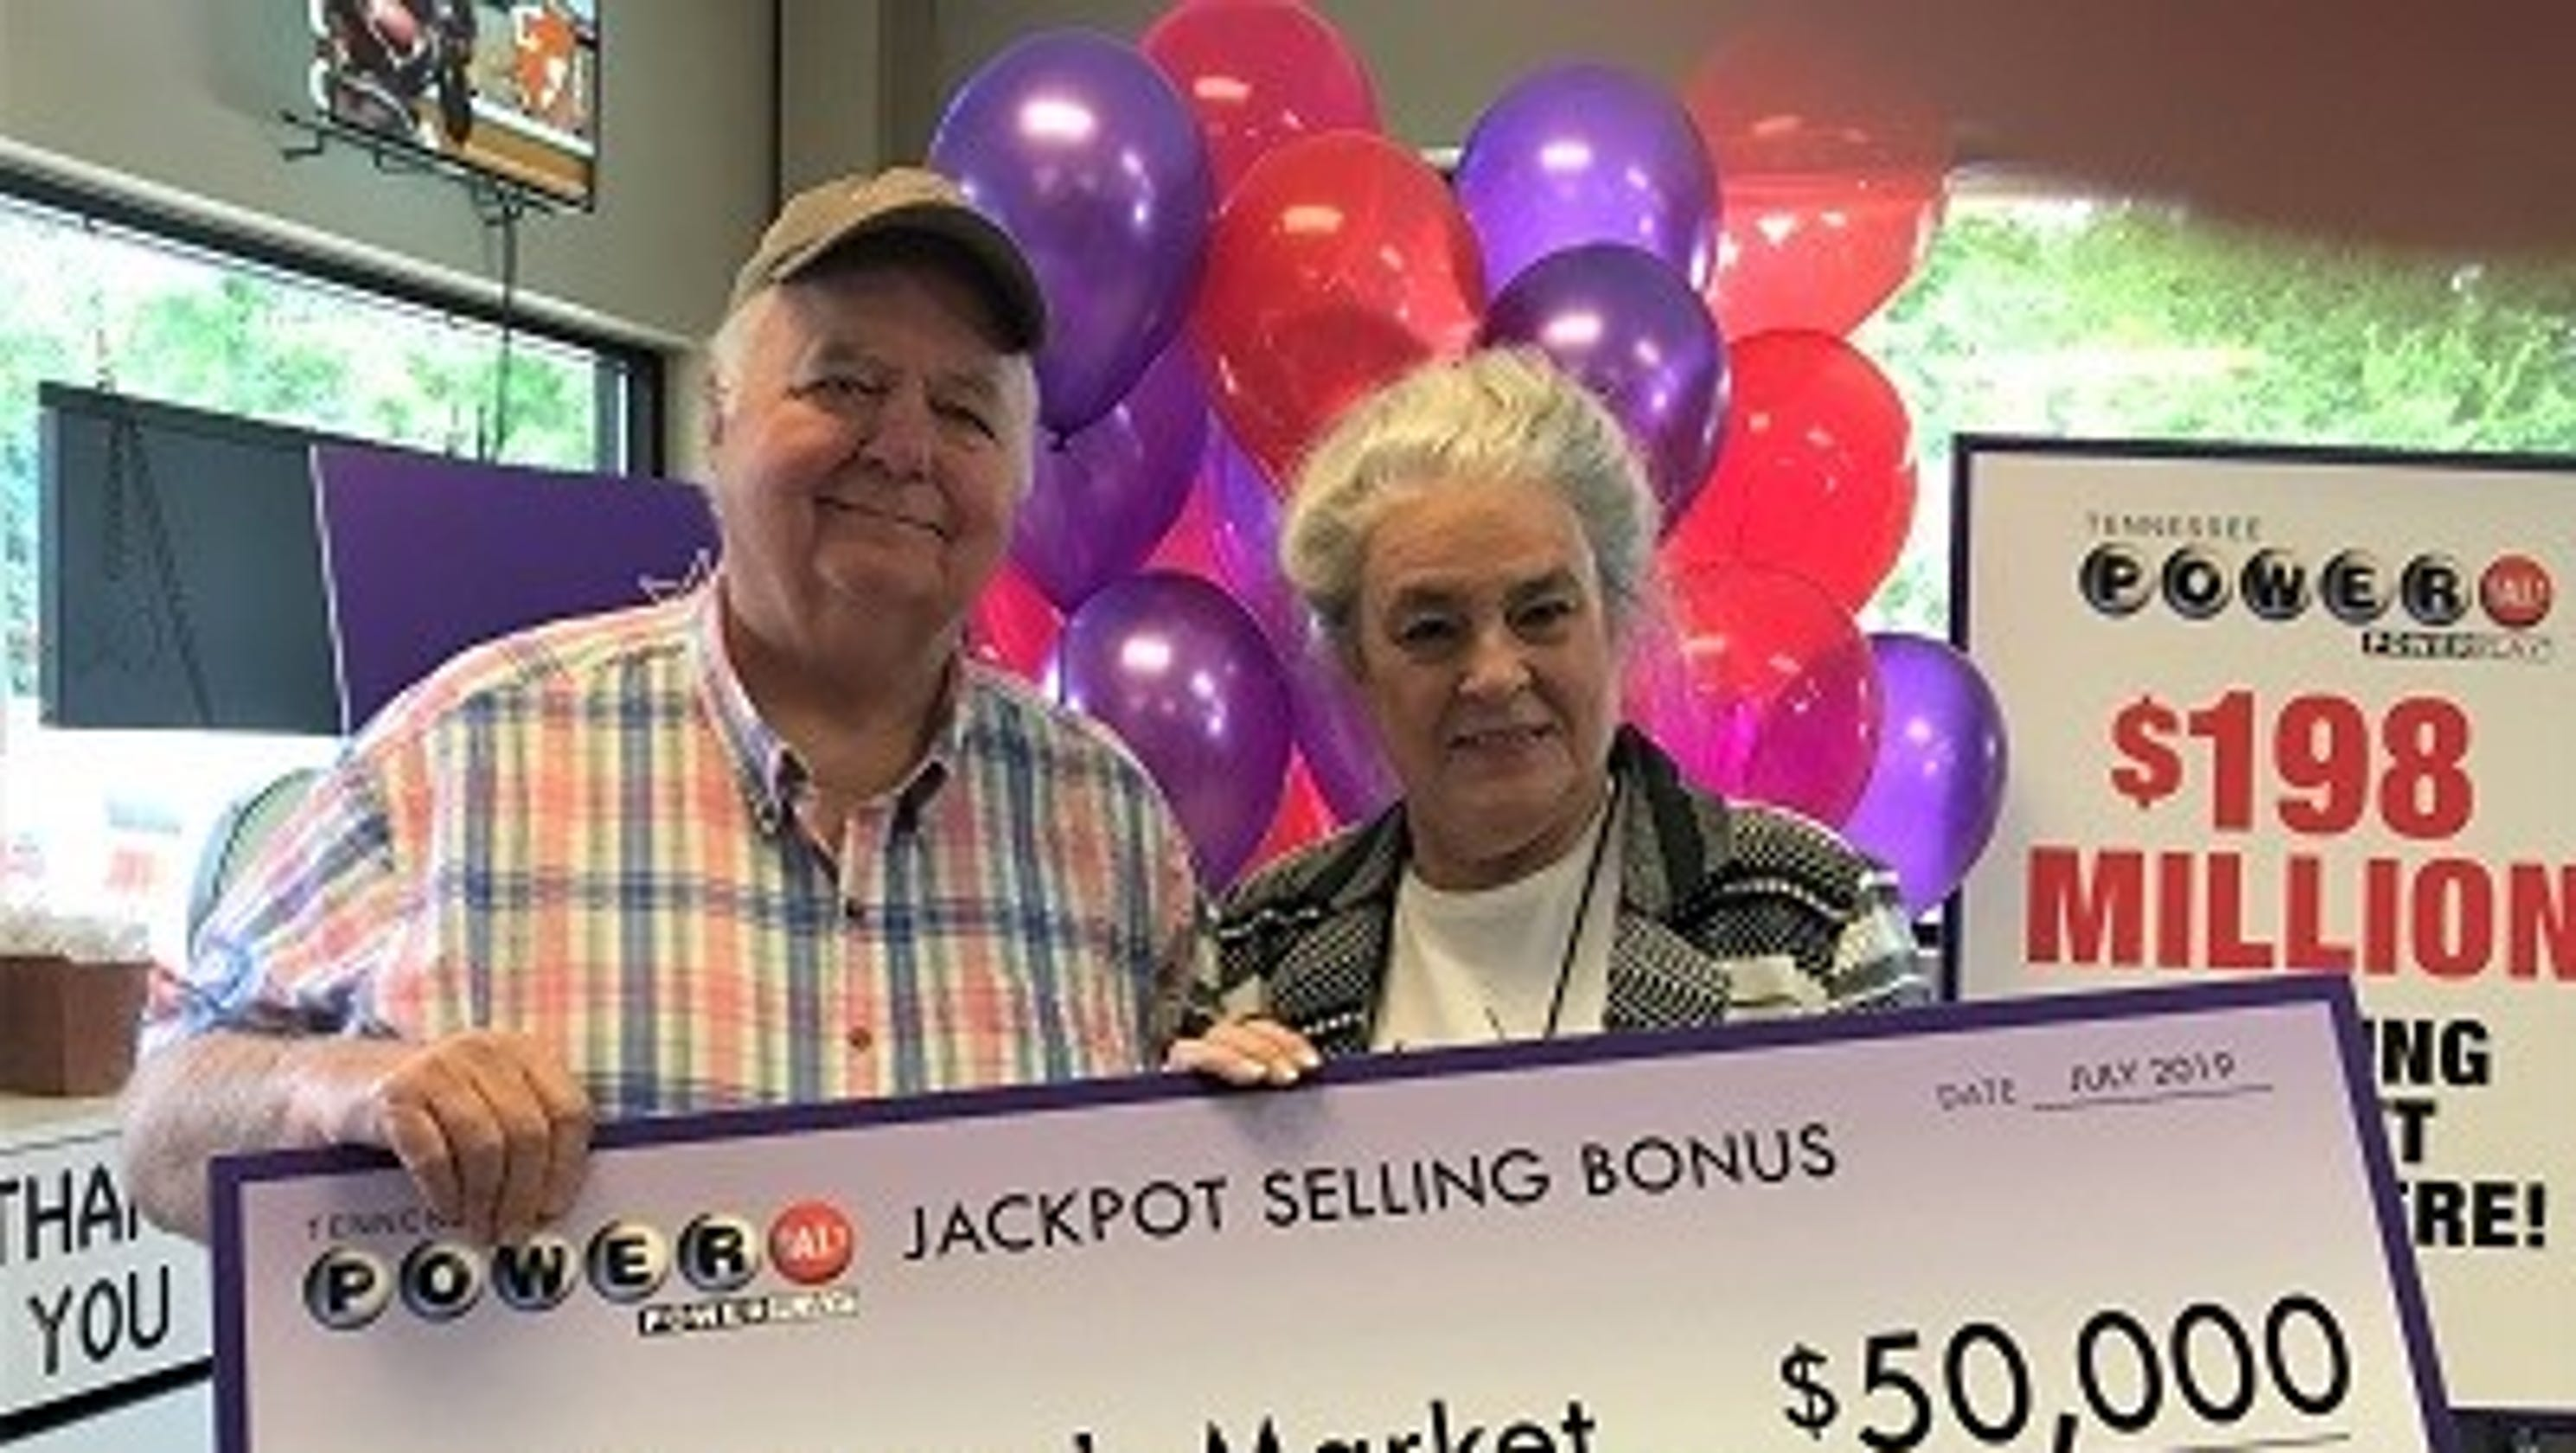 Tennessee Powerball winner bought $198M ticket at Worsham's